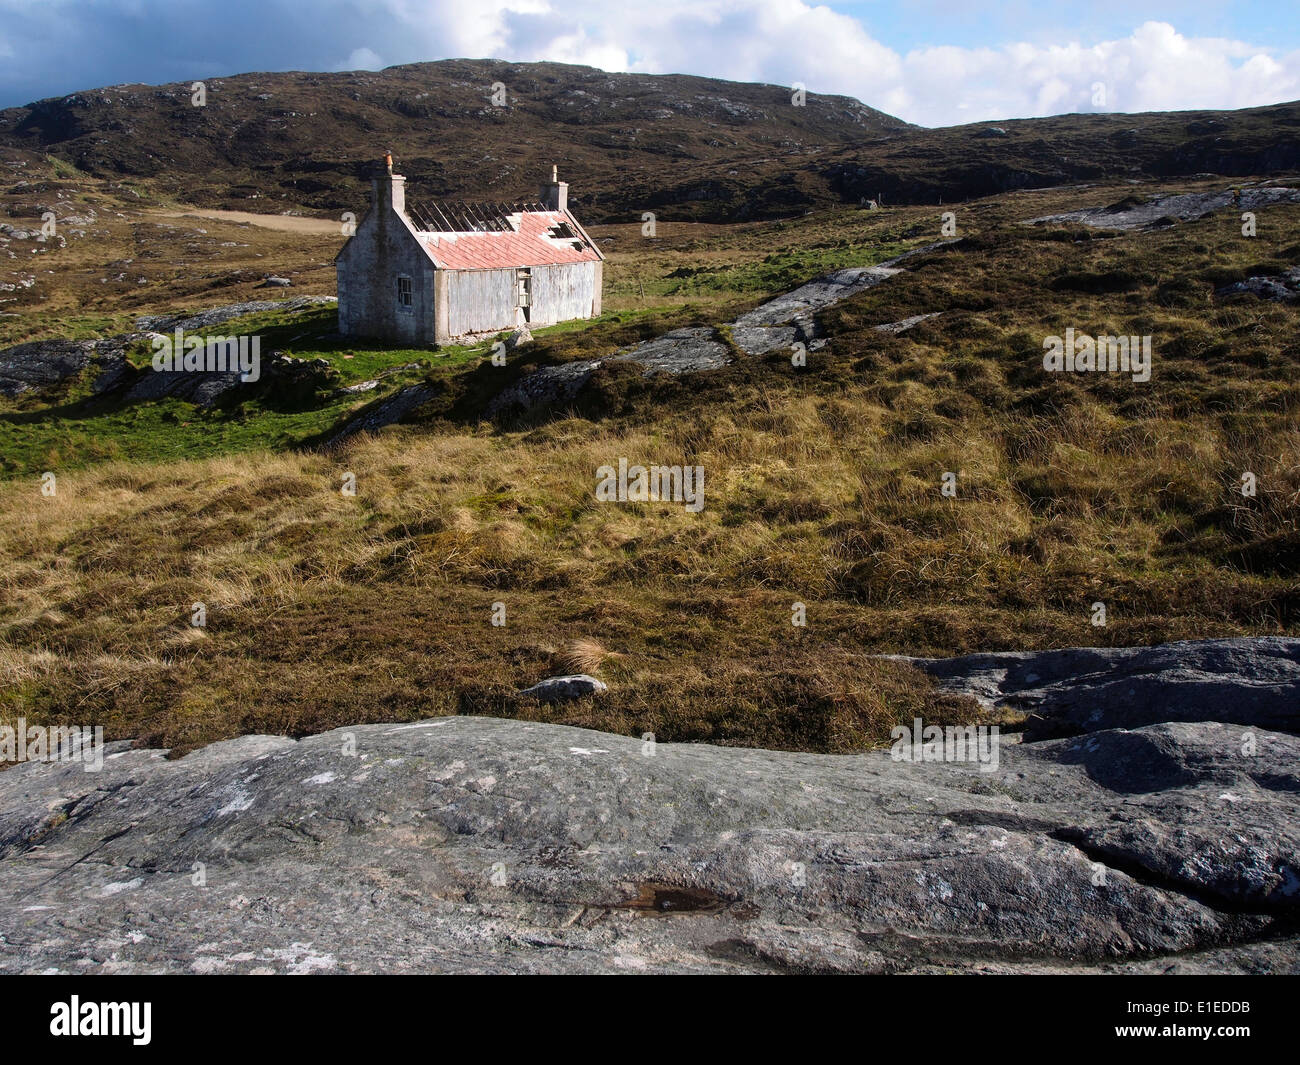 ruined house, Eriskay, Outer Hebrides, Scotland - Stock Image